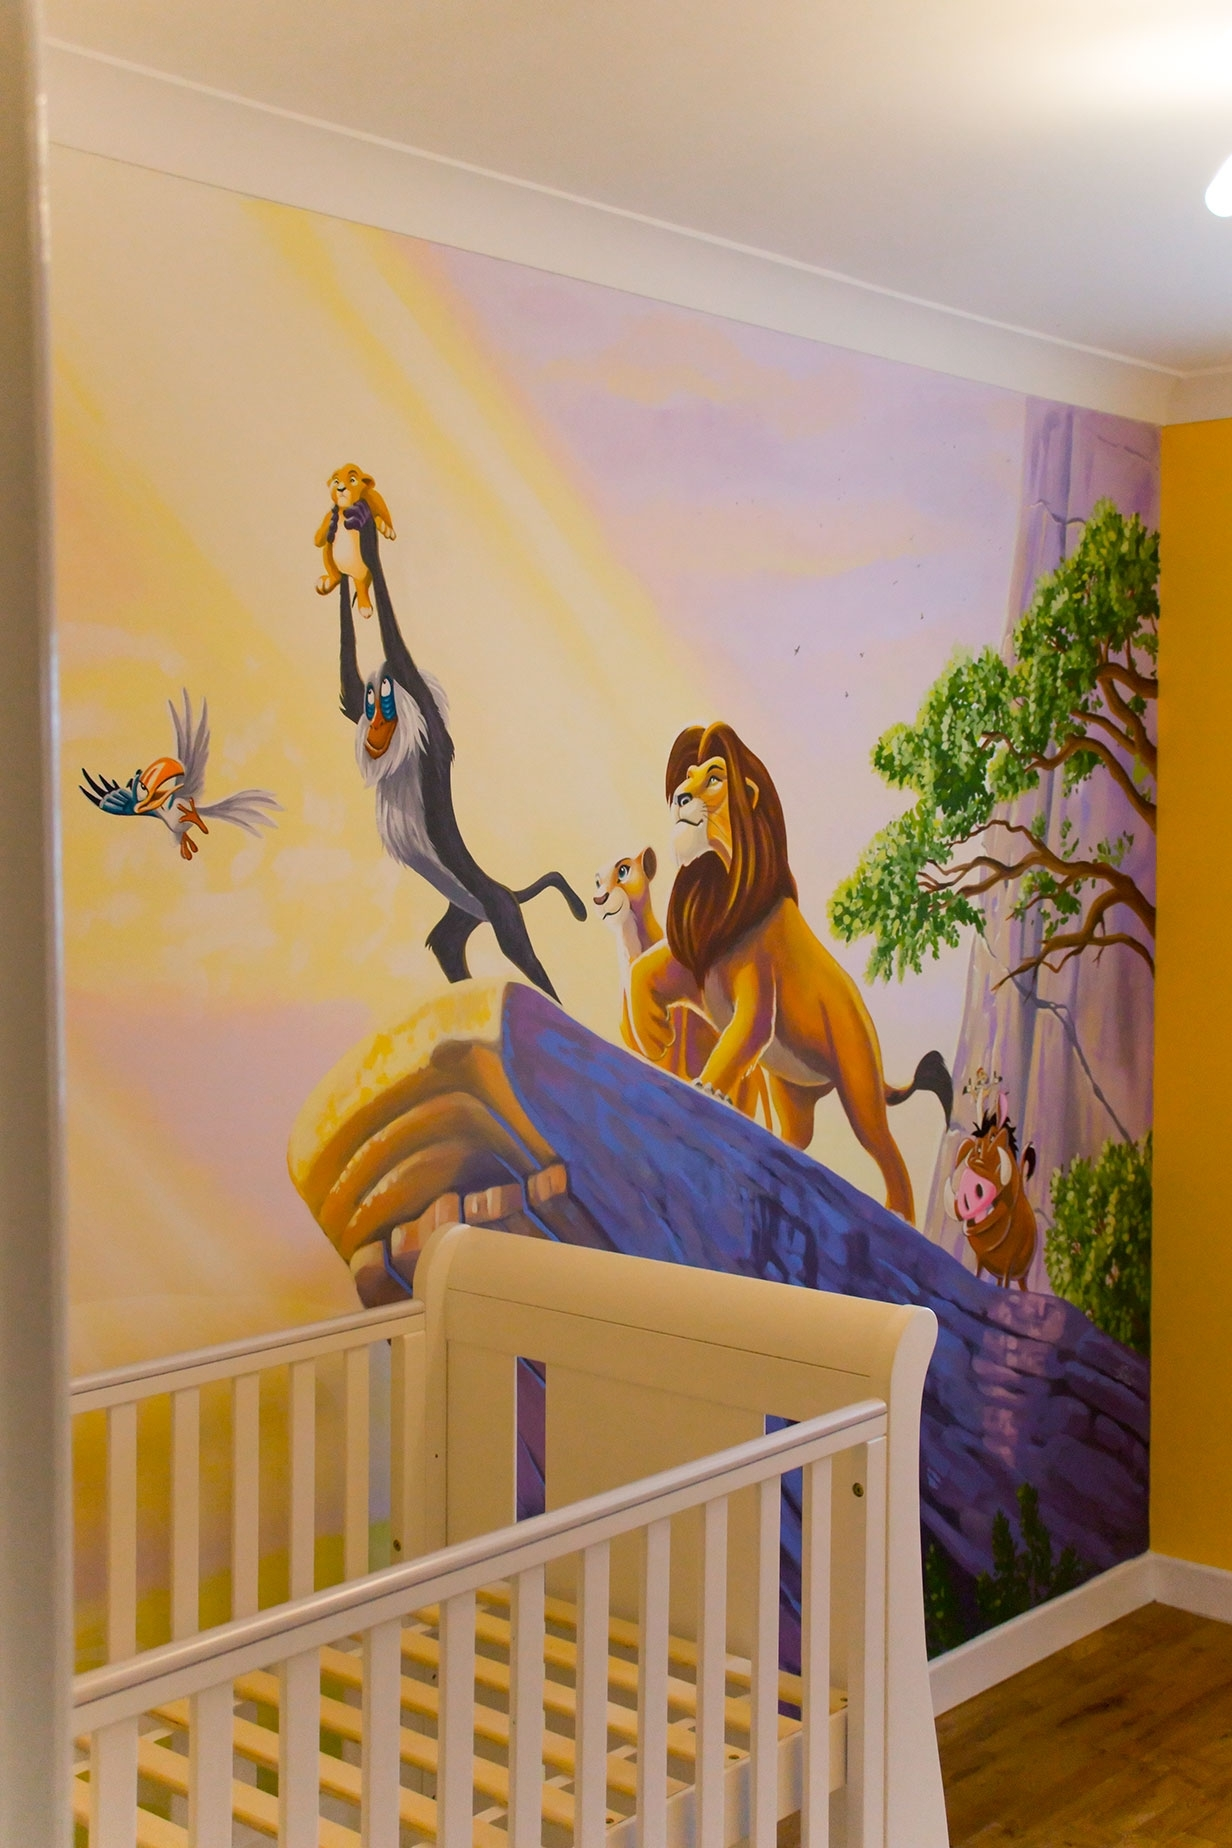 40 Lion King Wall Art, 301 Moved Permanently – Swinkimorskie For Most Recently Released Lion King Wall Art (View 3 of 20)